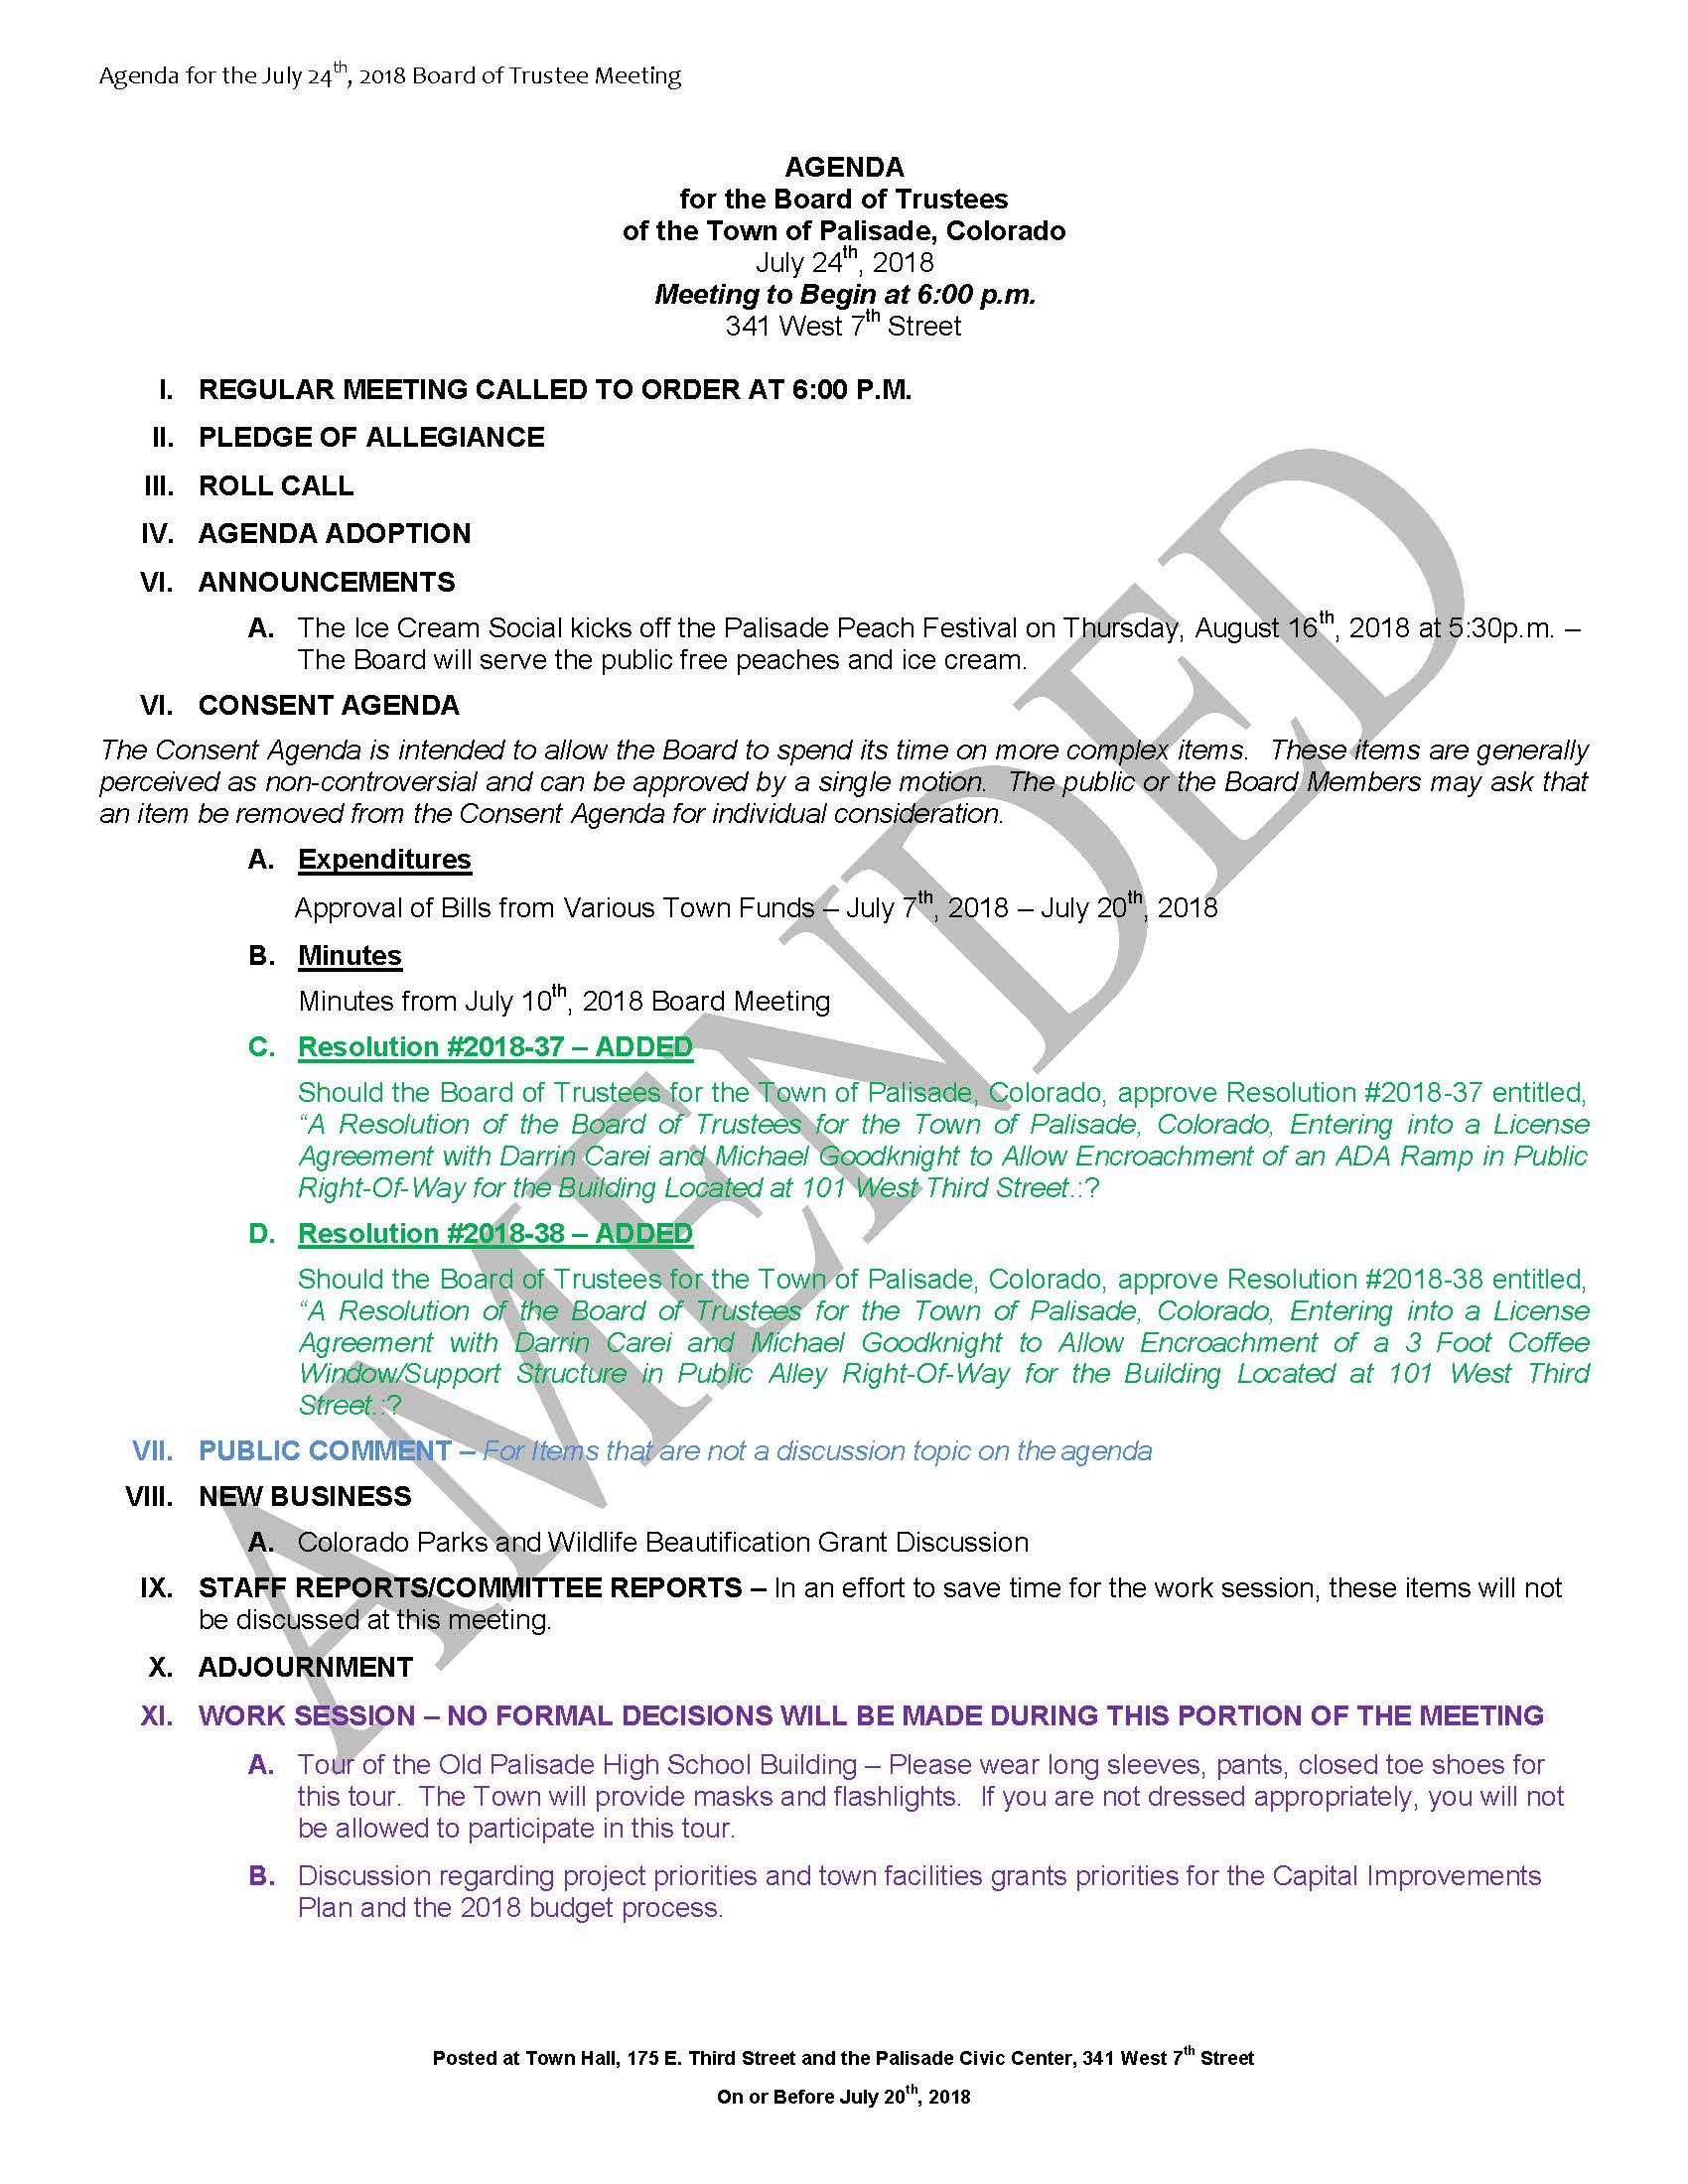 July 24th 2018 Board Meeting Agenda Amended